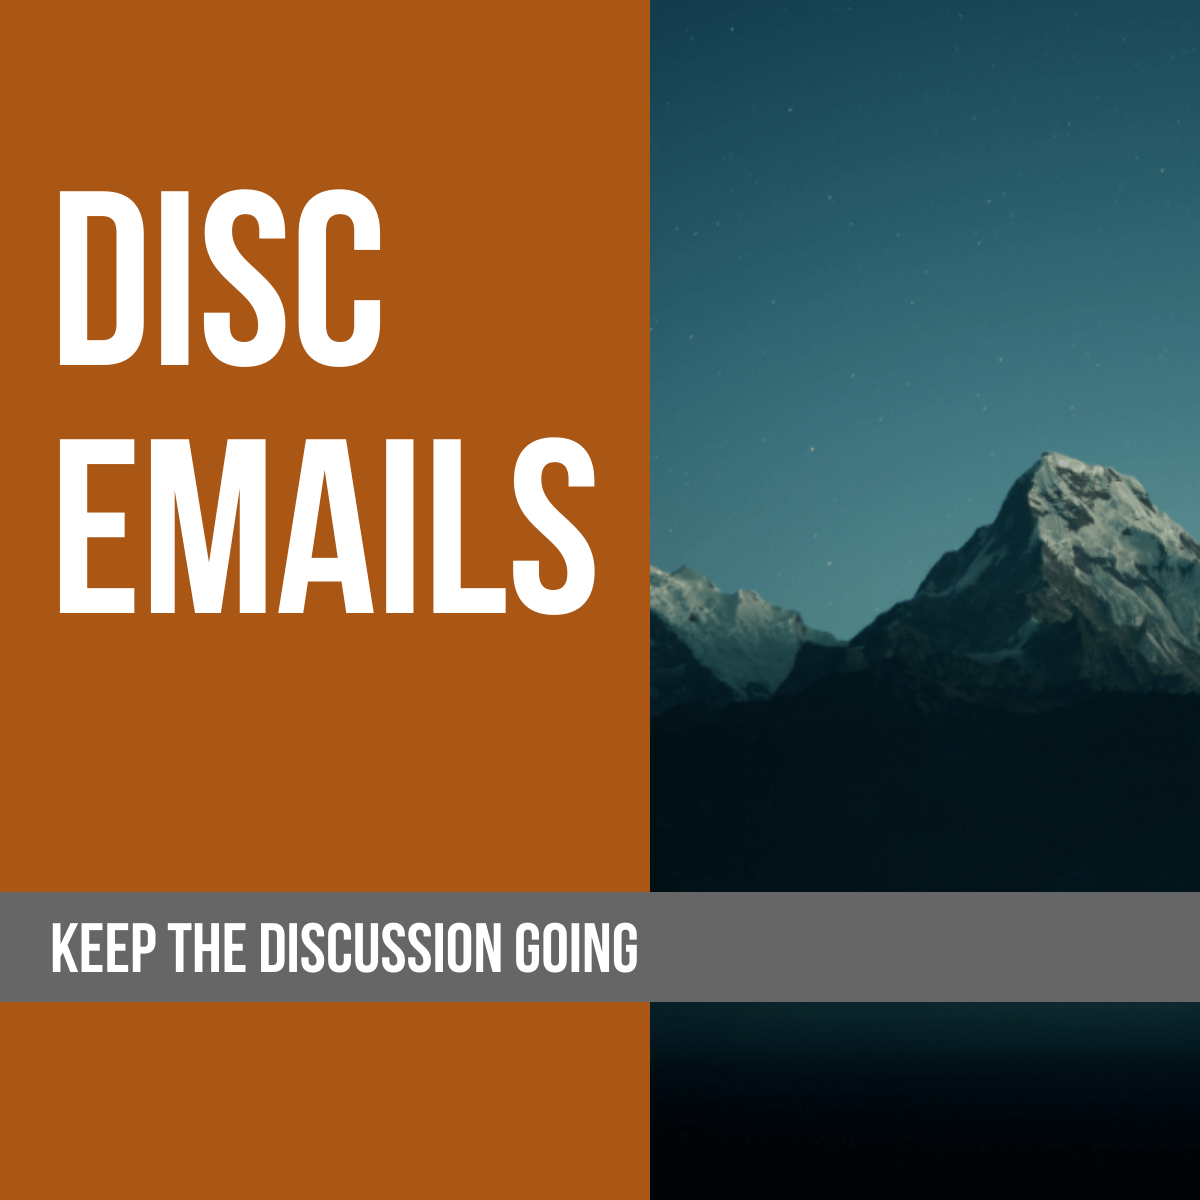 DiSC Emails